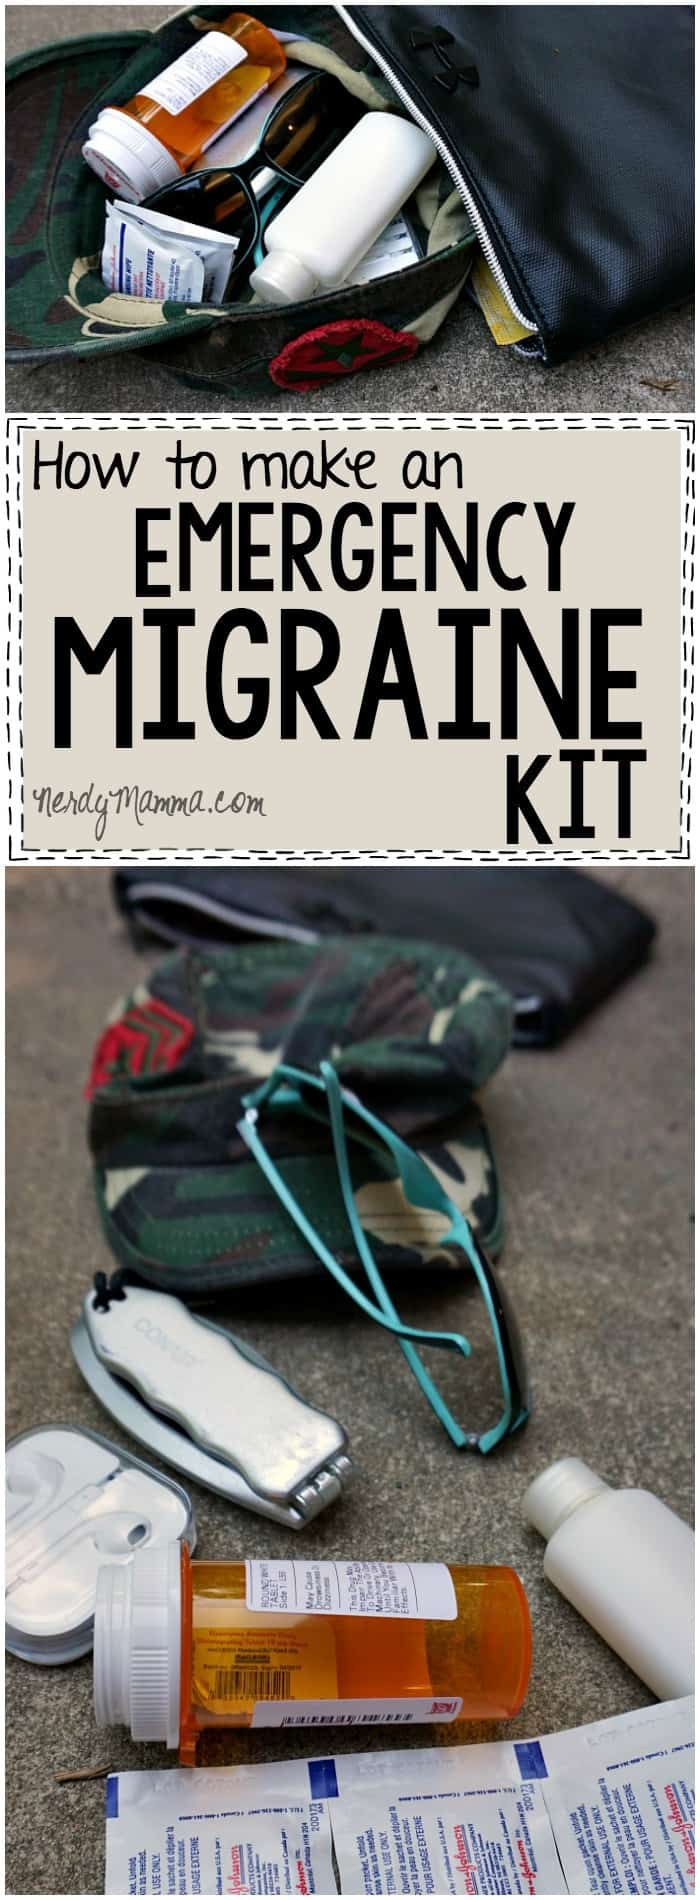 I love this idea! So fantastic to be prepared for an unexpected migraine! #ad